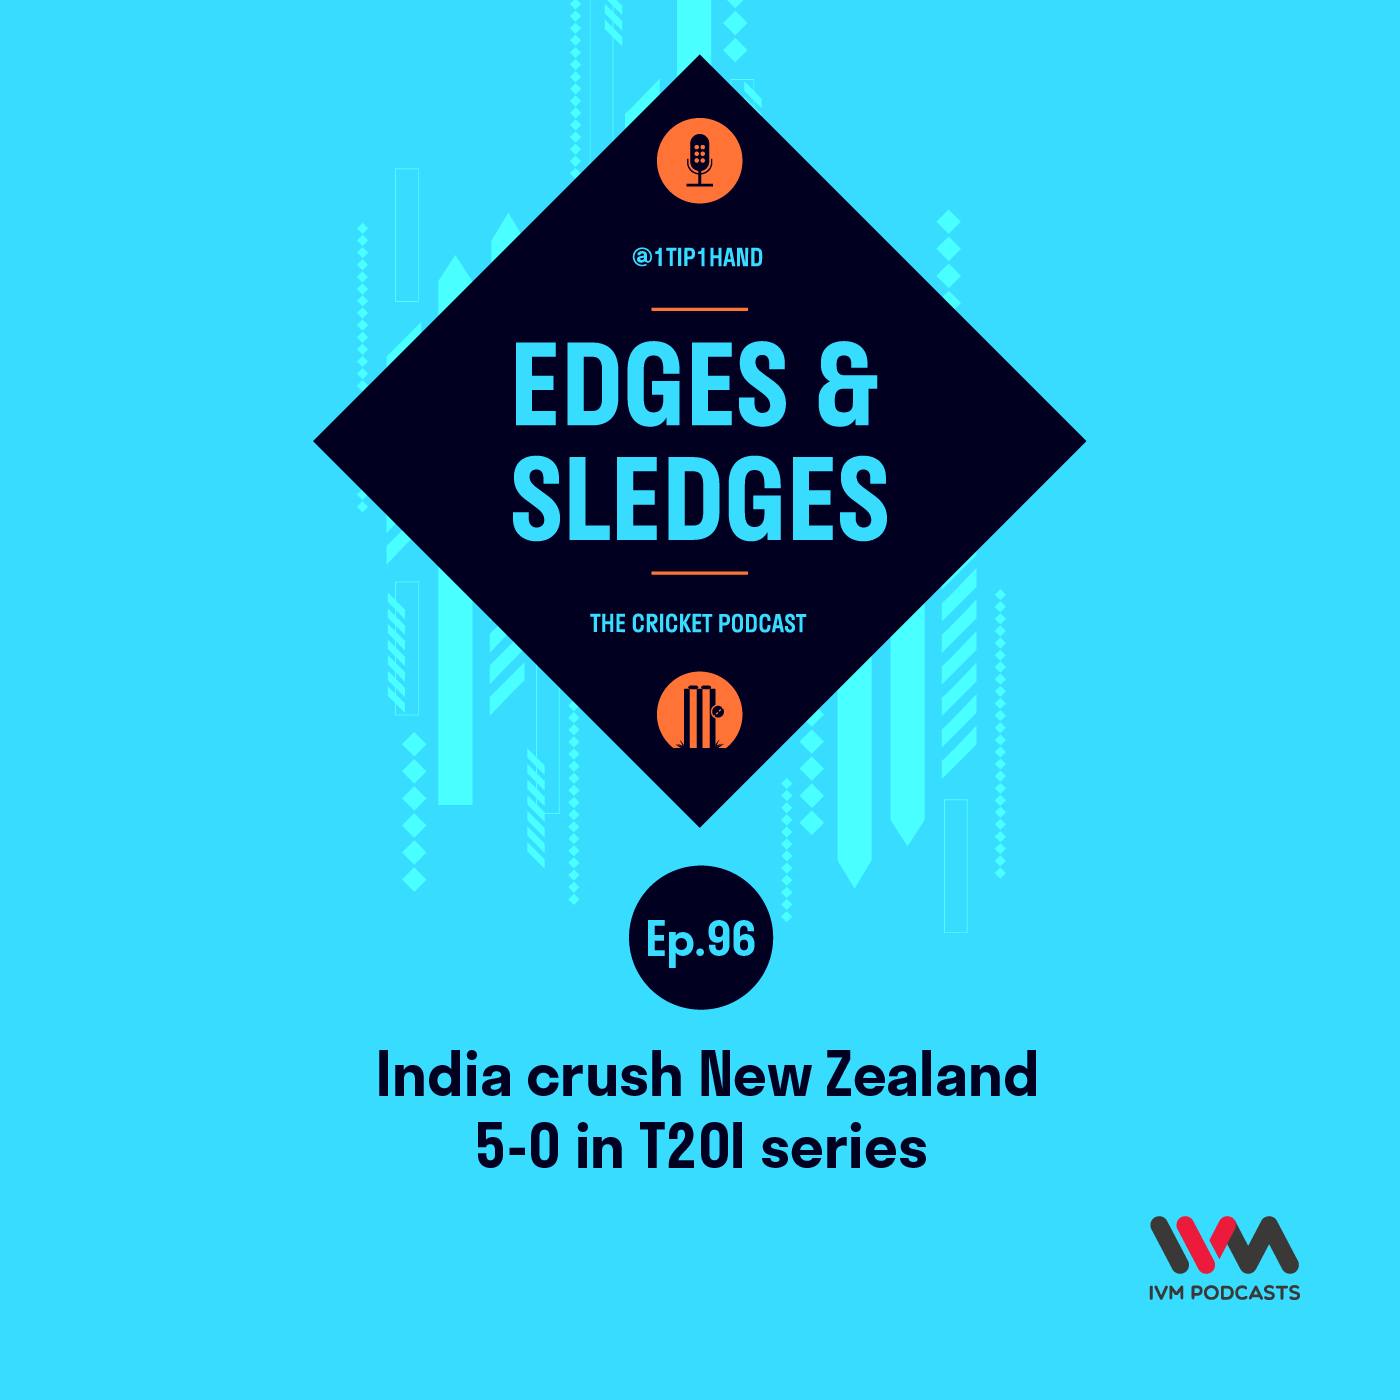 Ep. 96: India crush New Zealand 5-0 in T20I series